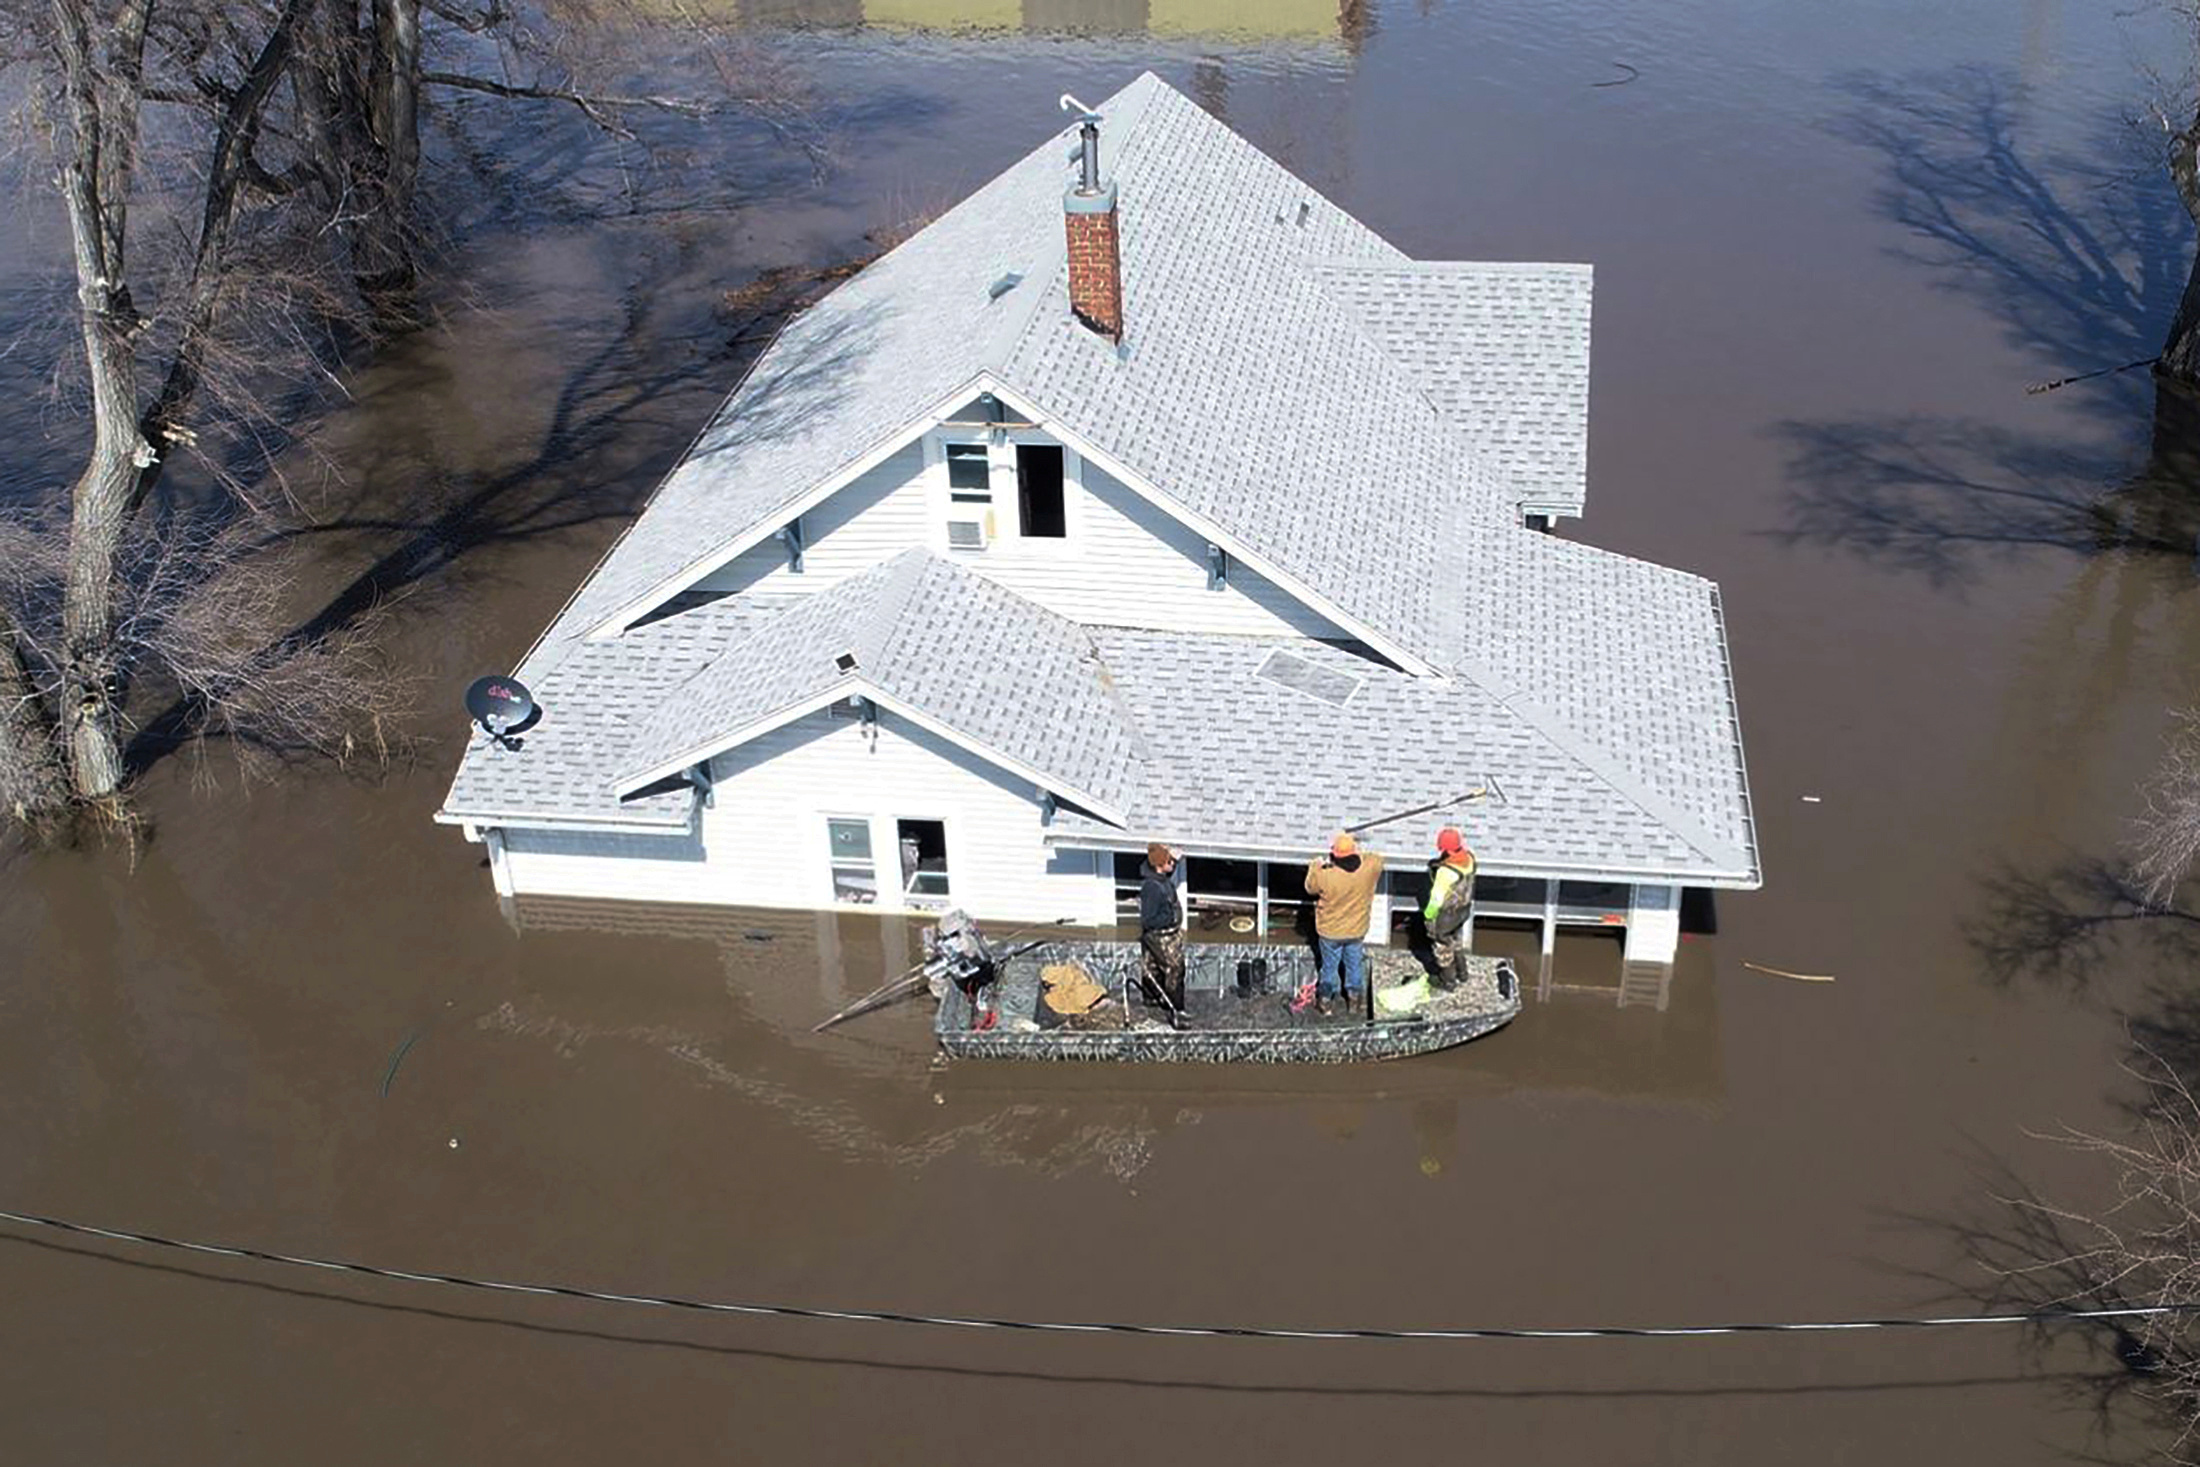 Lanni Bailey and a team from Muddy Paws Second Chance Rescue enter a flooded house to pull out several cats during the flooding of the Missouri River near Glenwood, Iowa, March 18, 2019.